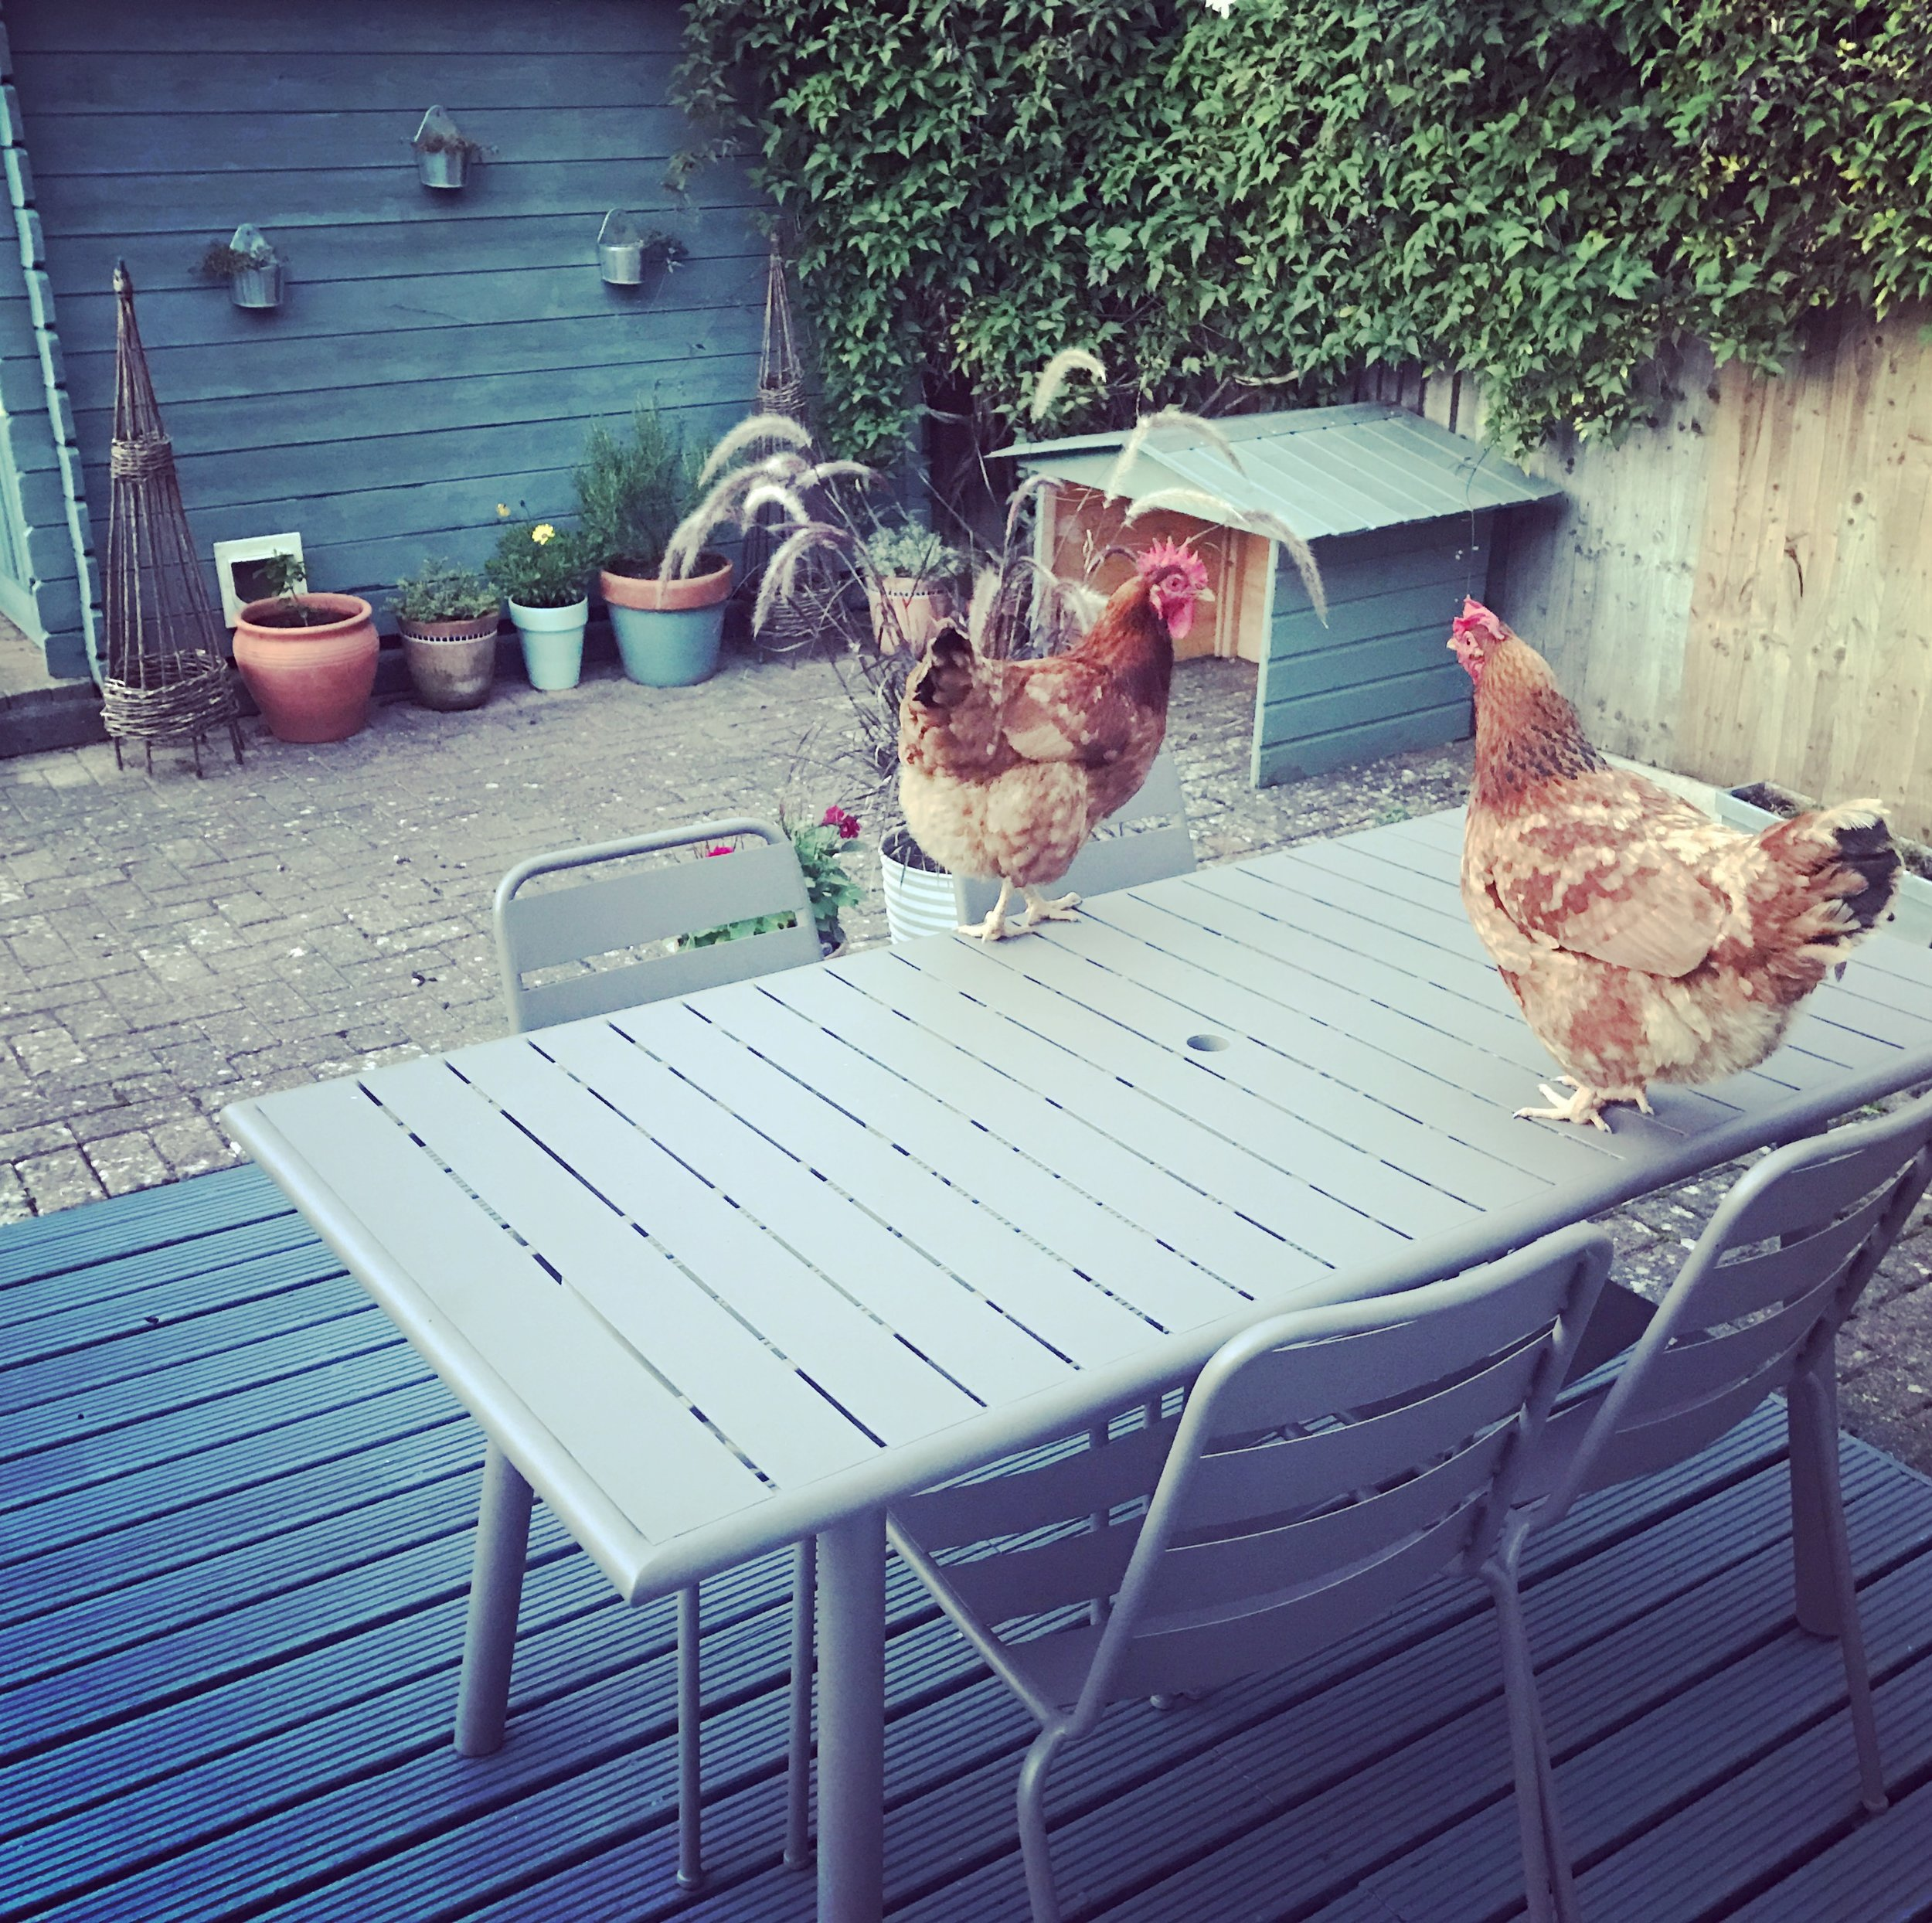 Margo (left) up to no good on the table with her late friend Barbara last summer.